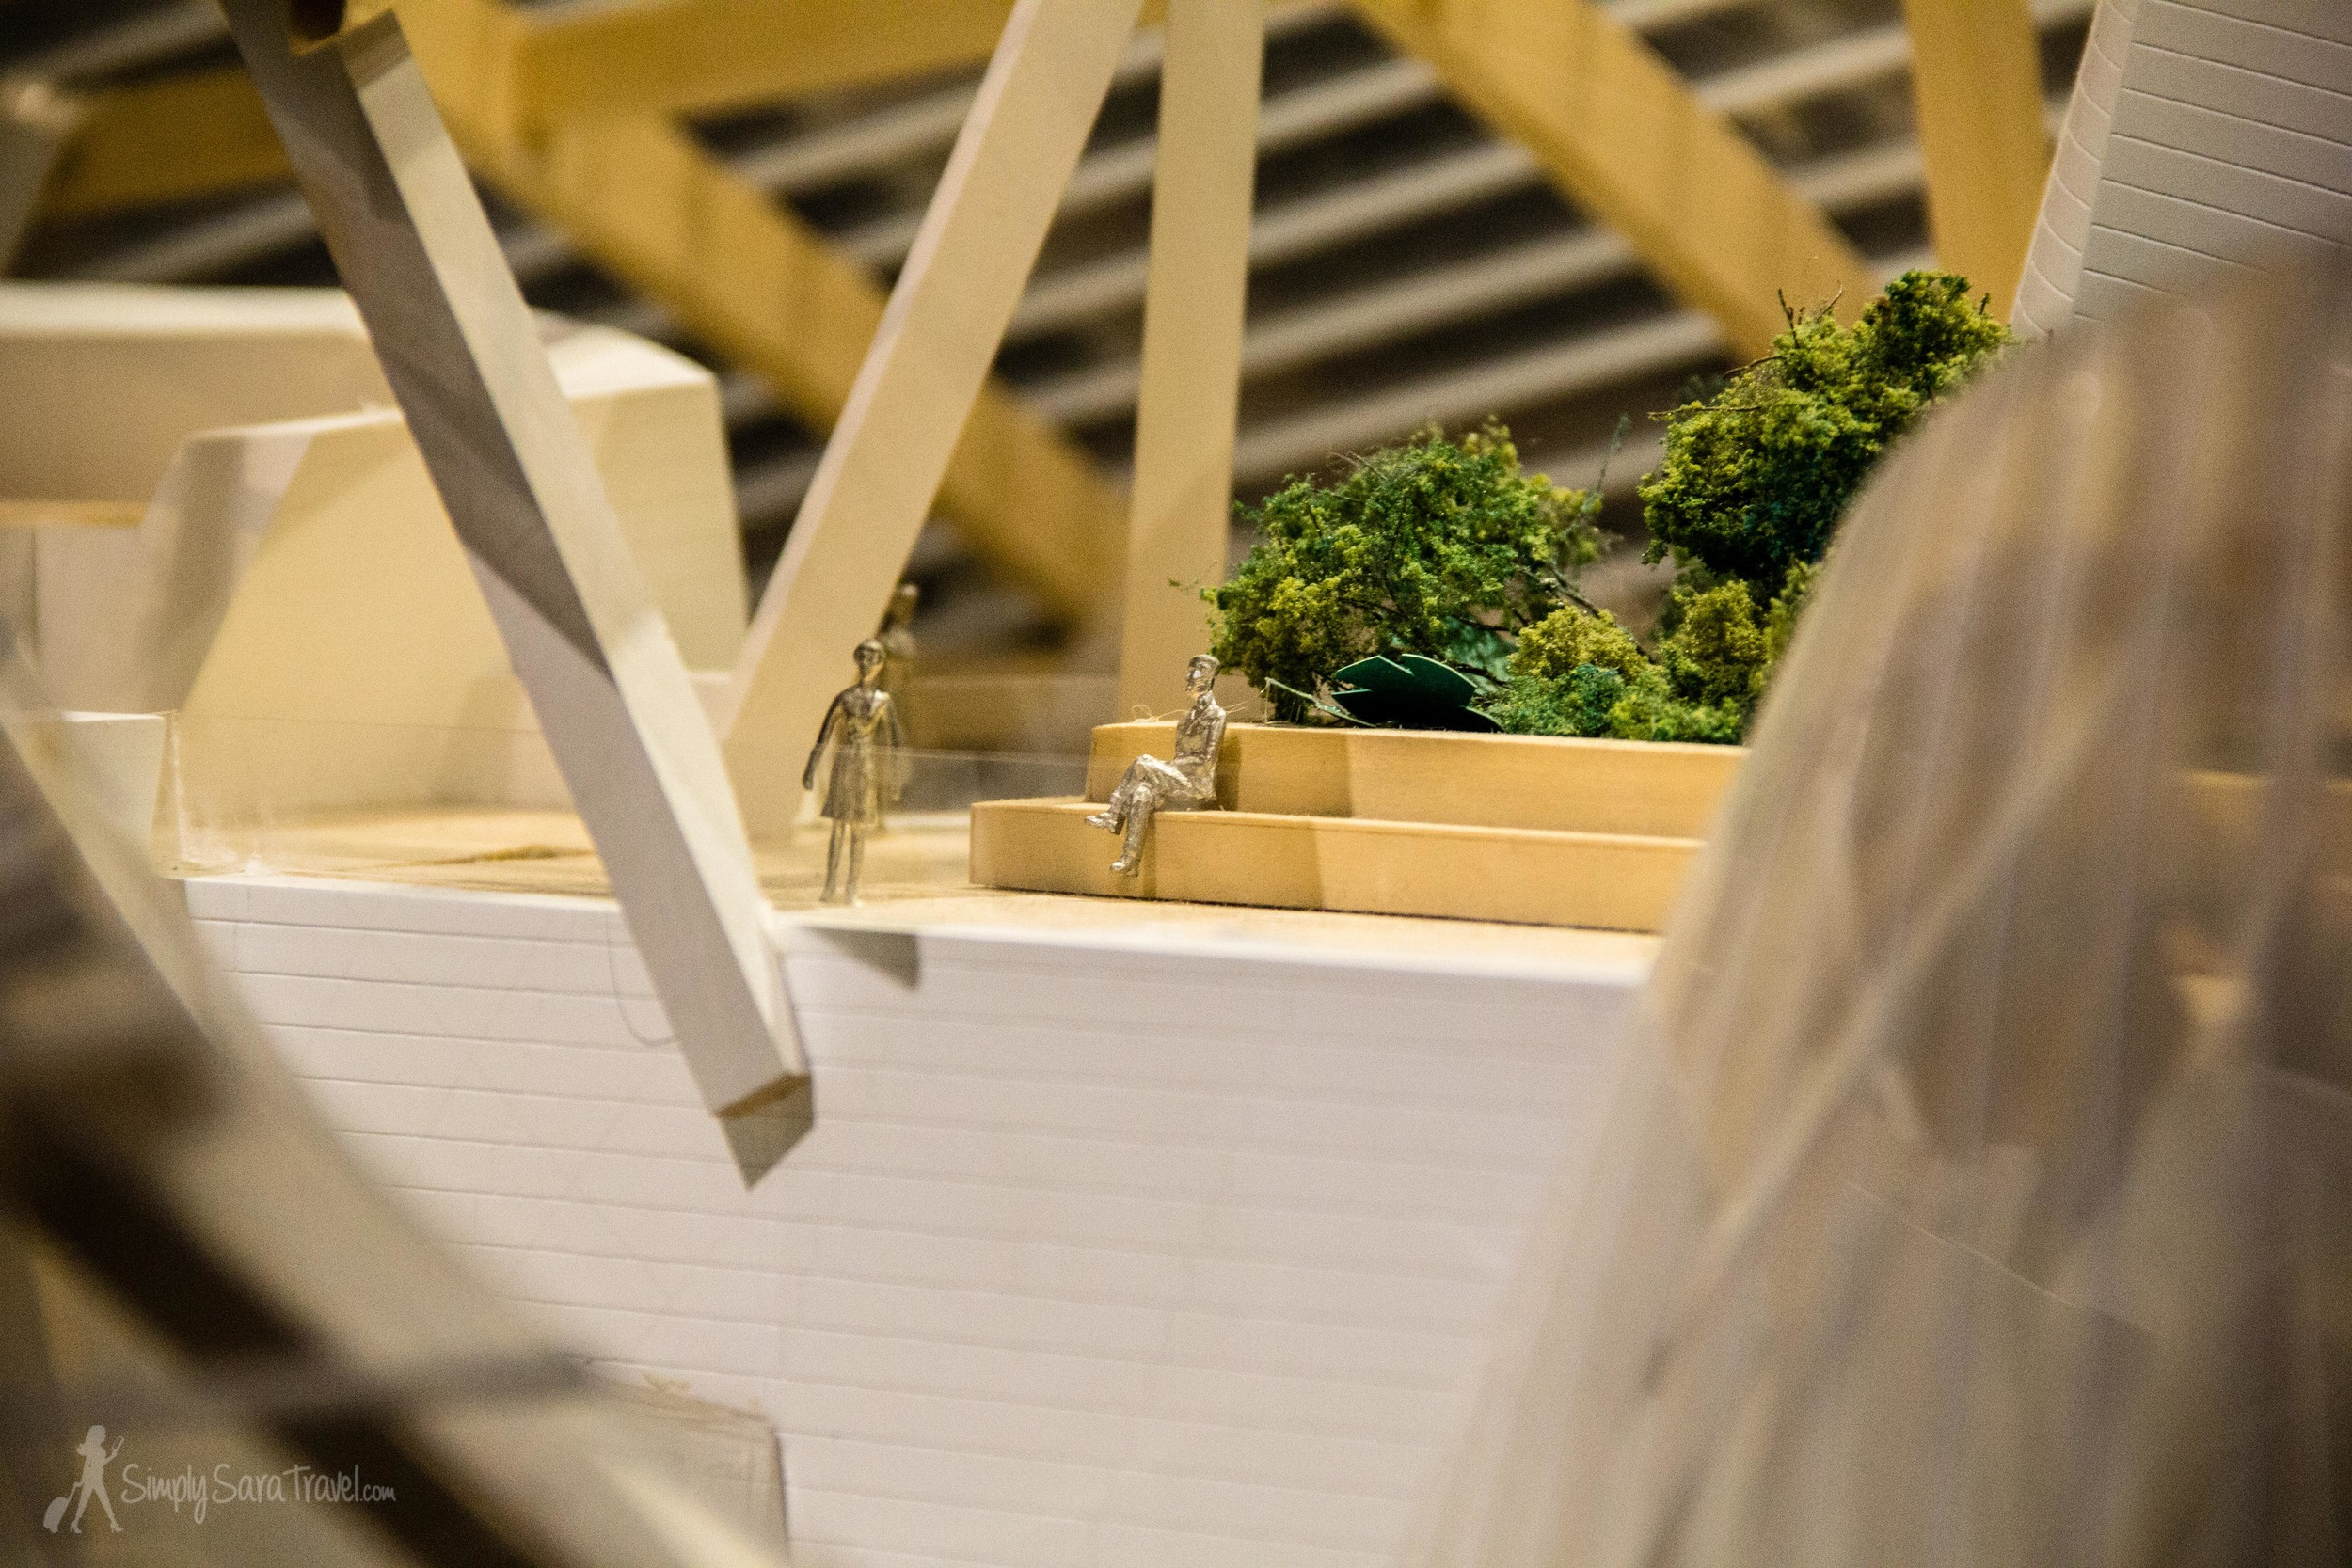 Here's some details from the model that reflects howthe building looks today.